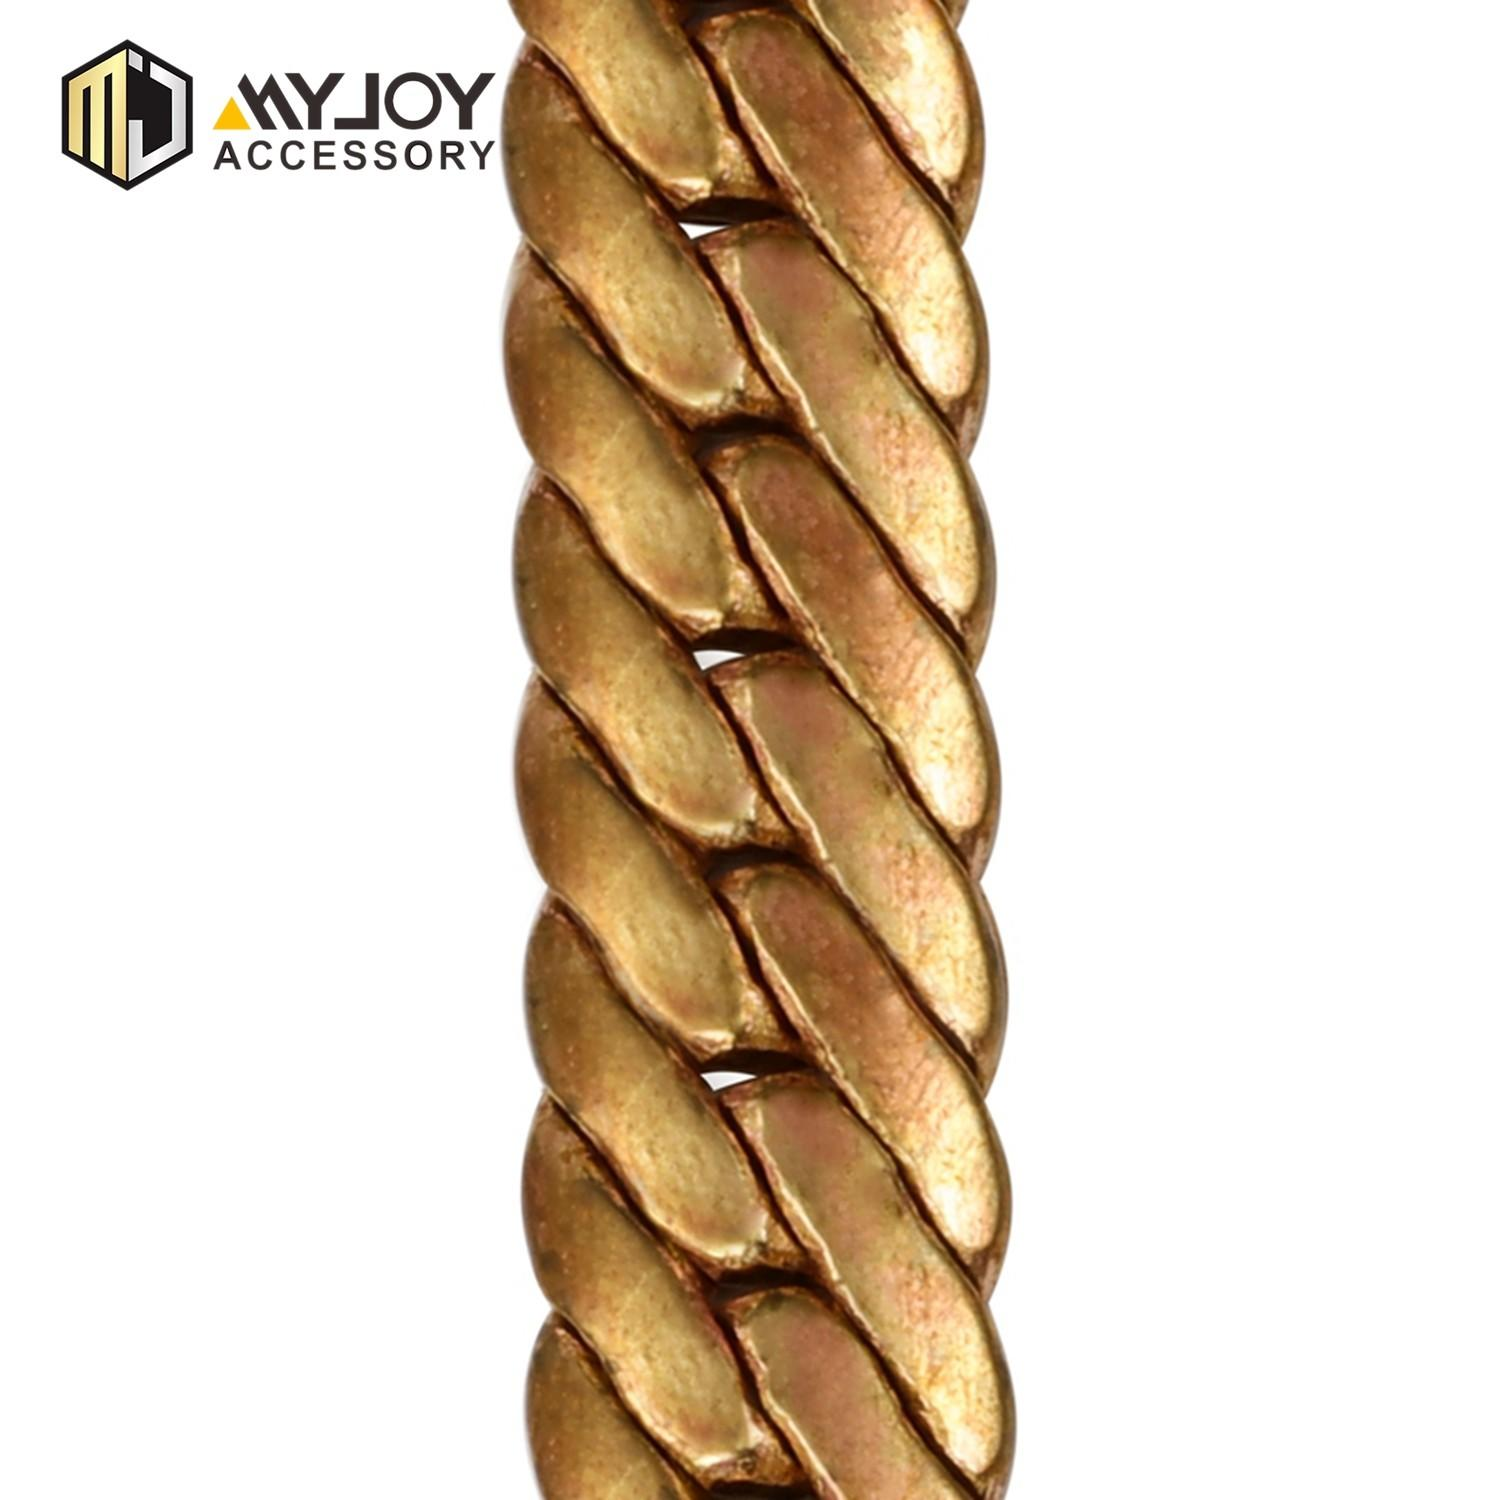 MYJOY High-quality bag chain manufacturers for purses